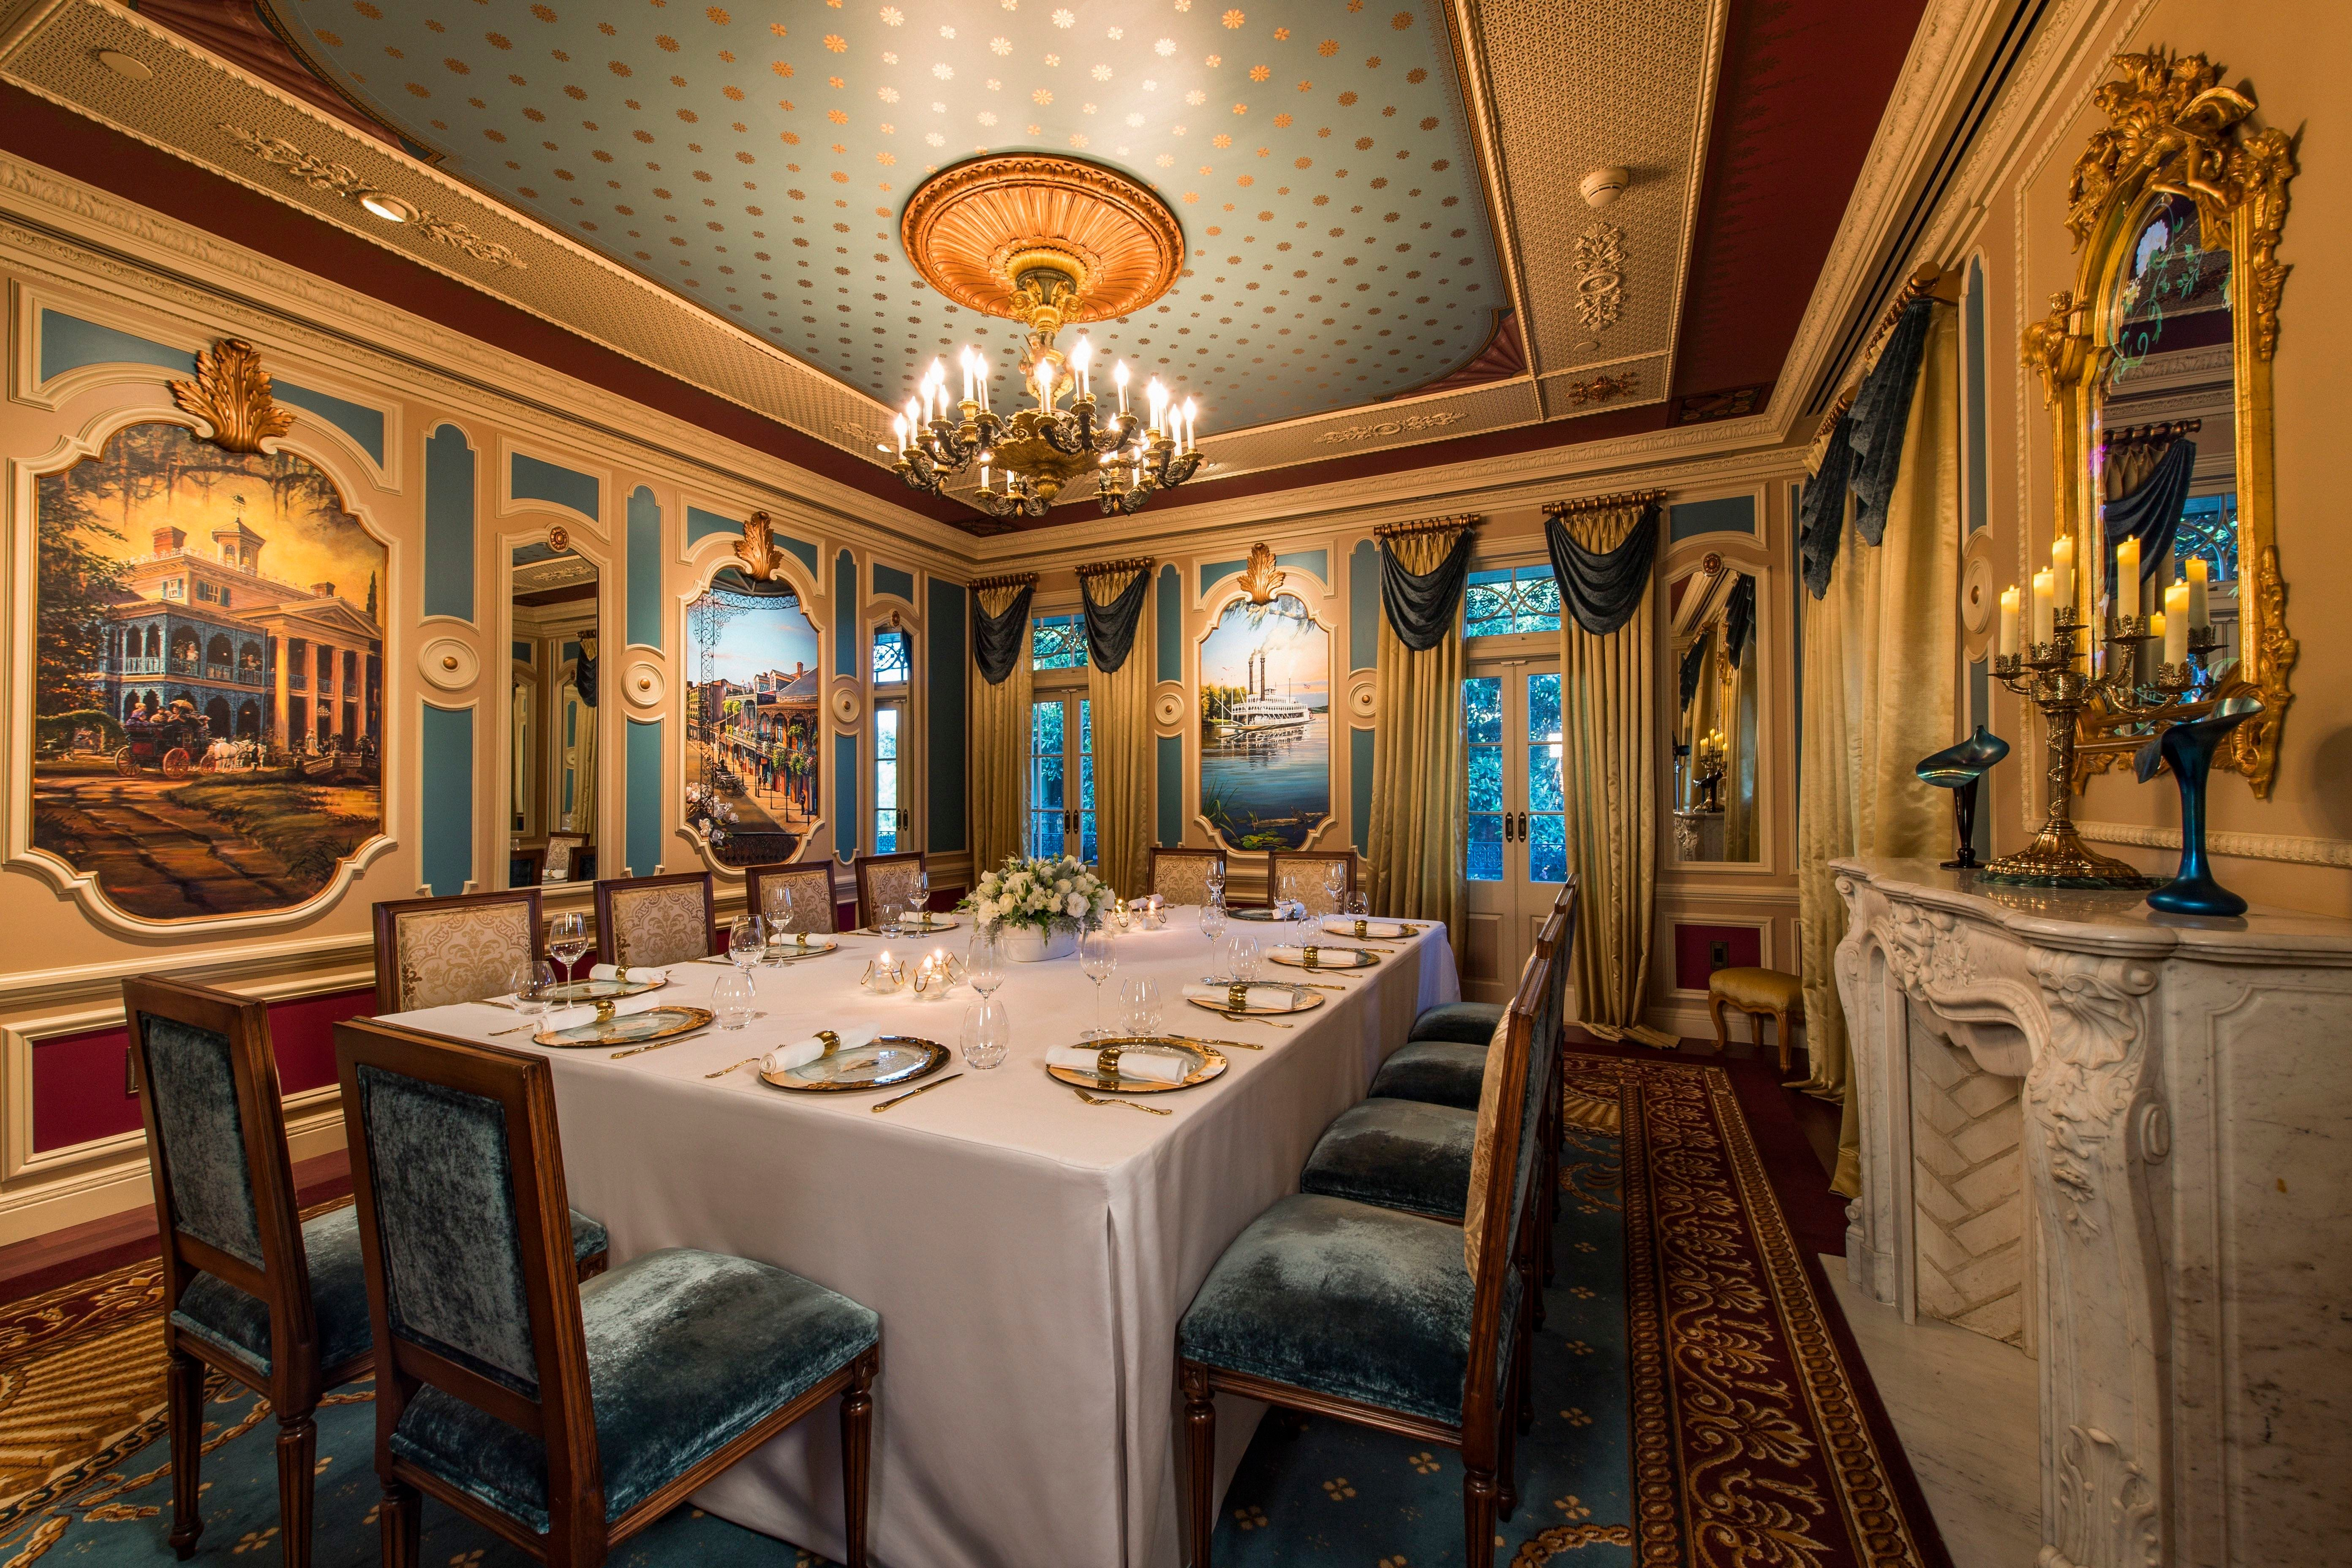 Dining room decor is based on Walt Disney's original plans for a private hangoutin the